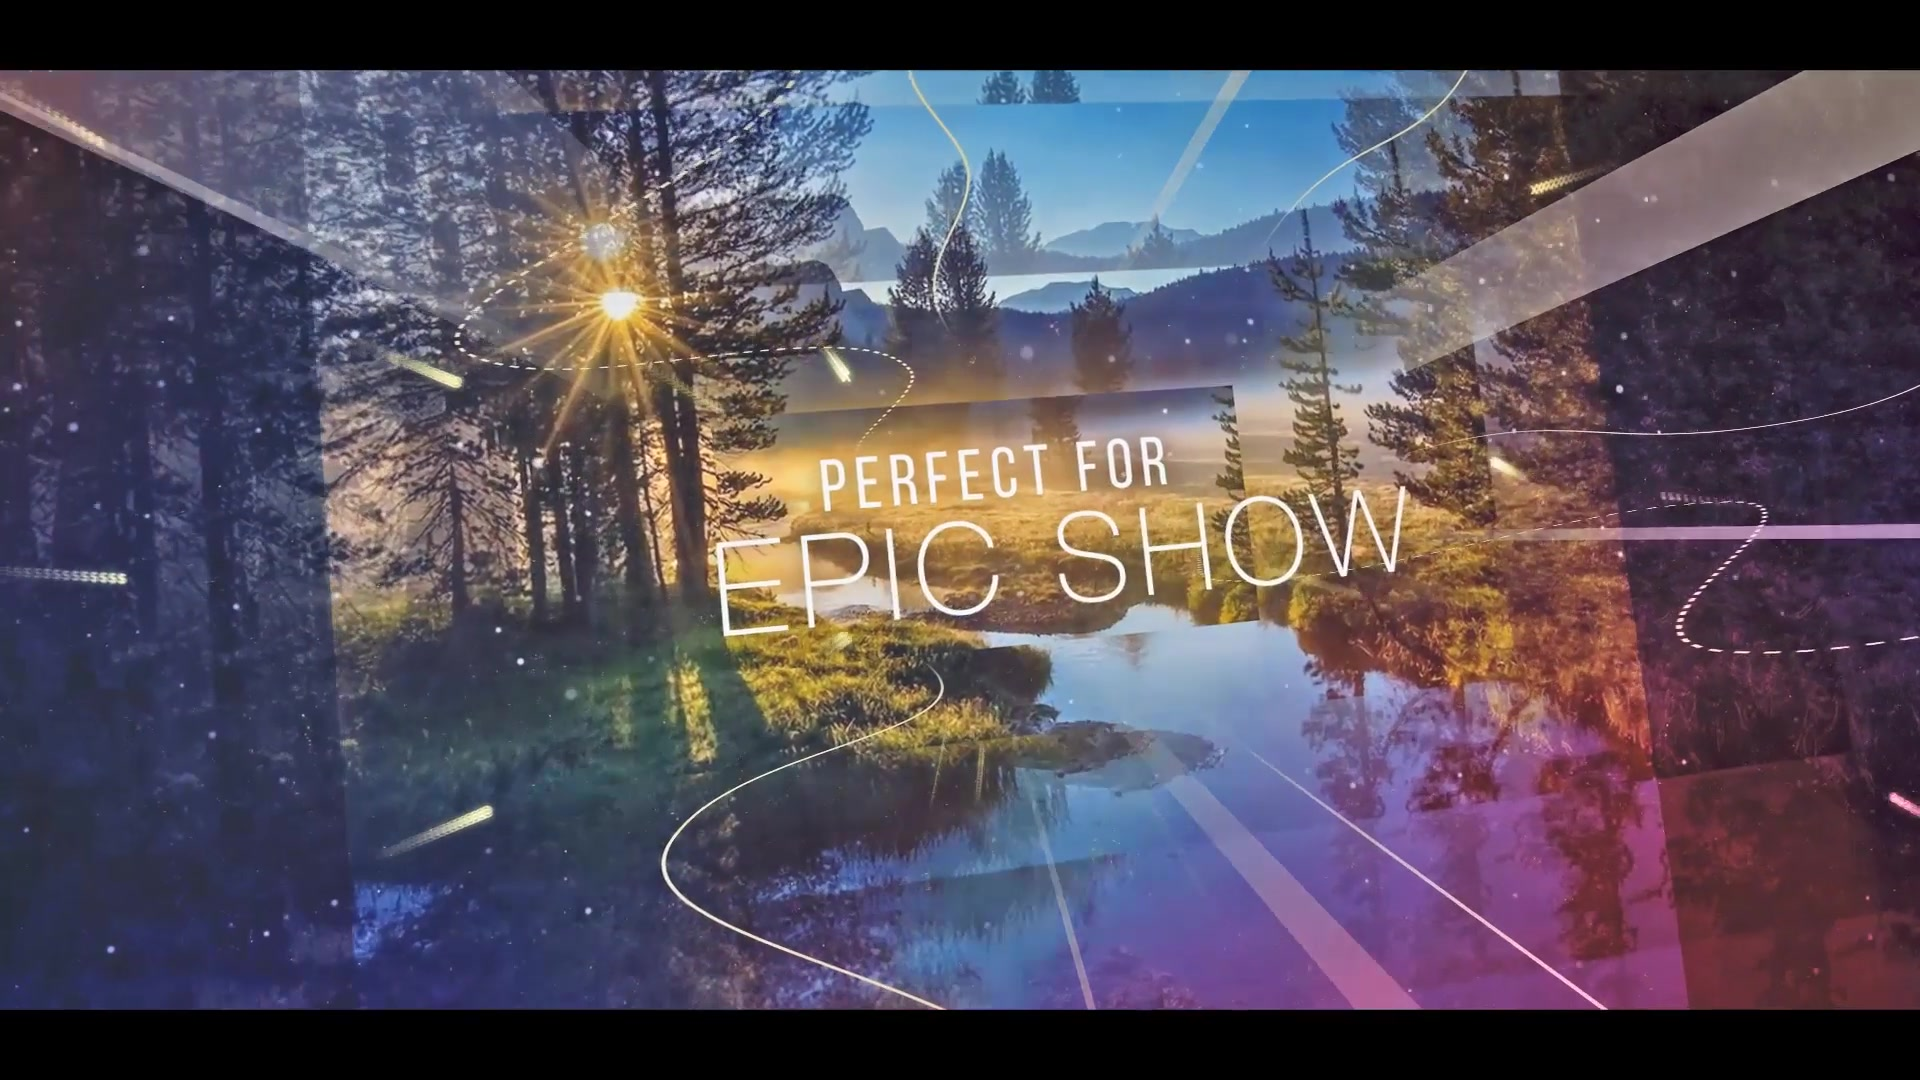 Slideshow Modern Parallax - Download Videohive 19374191